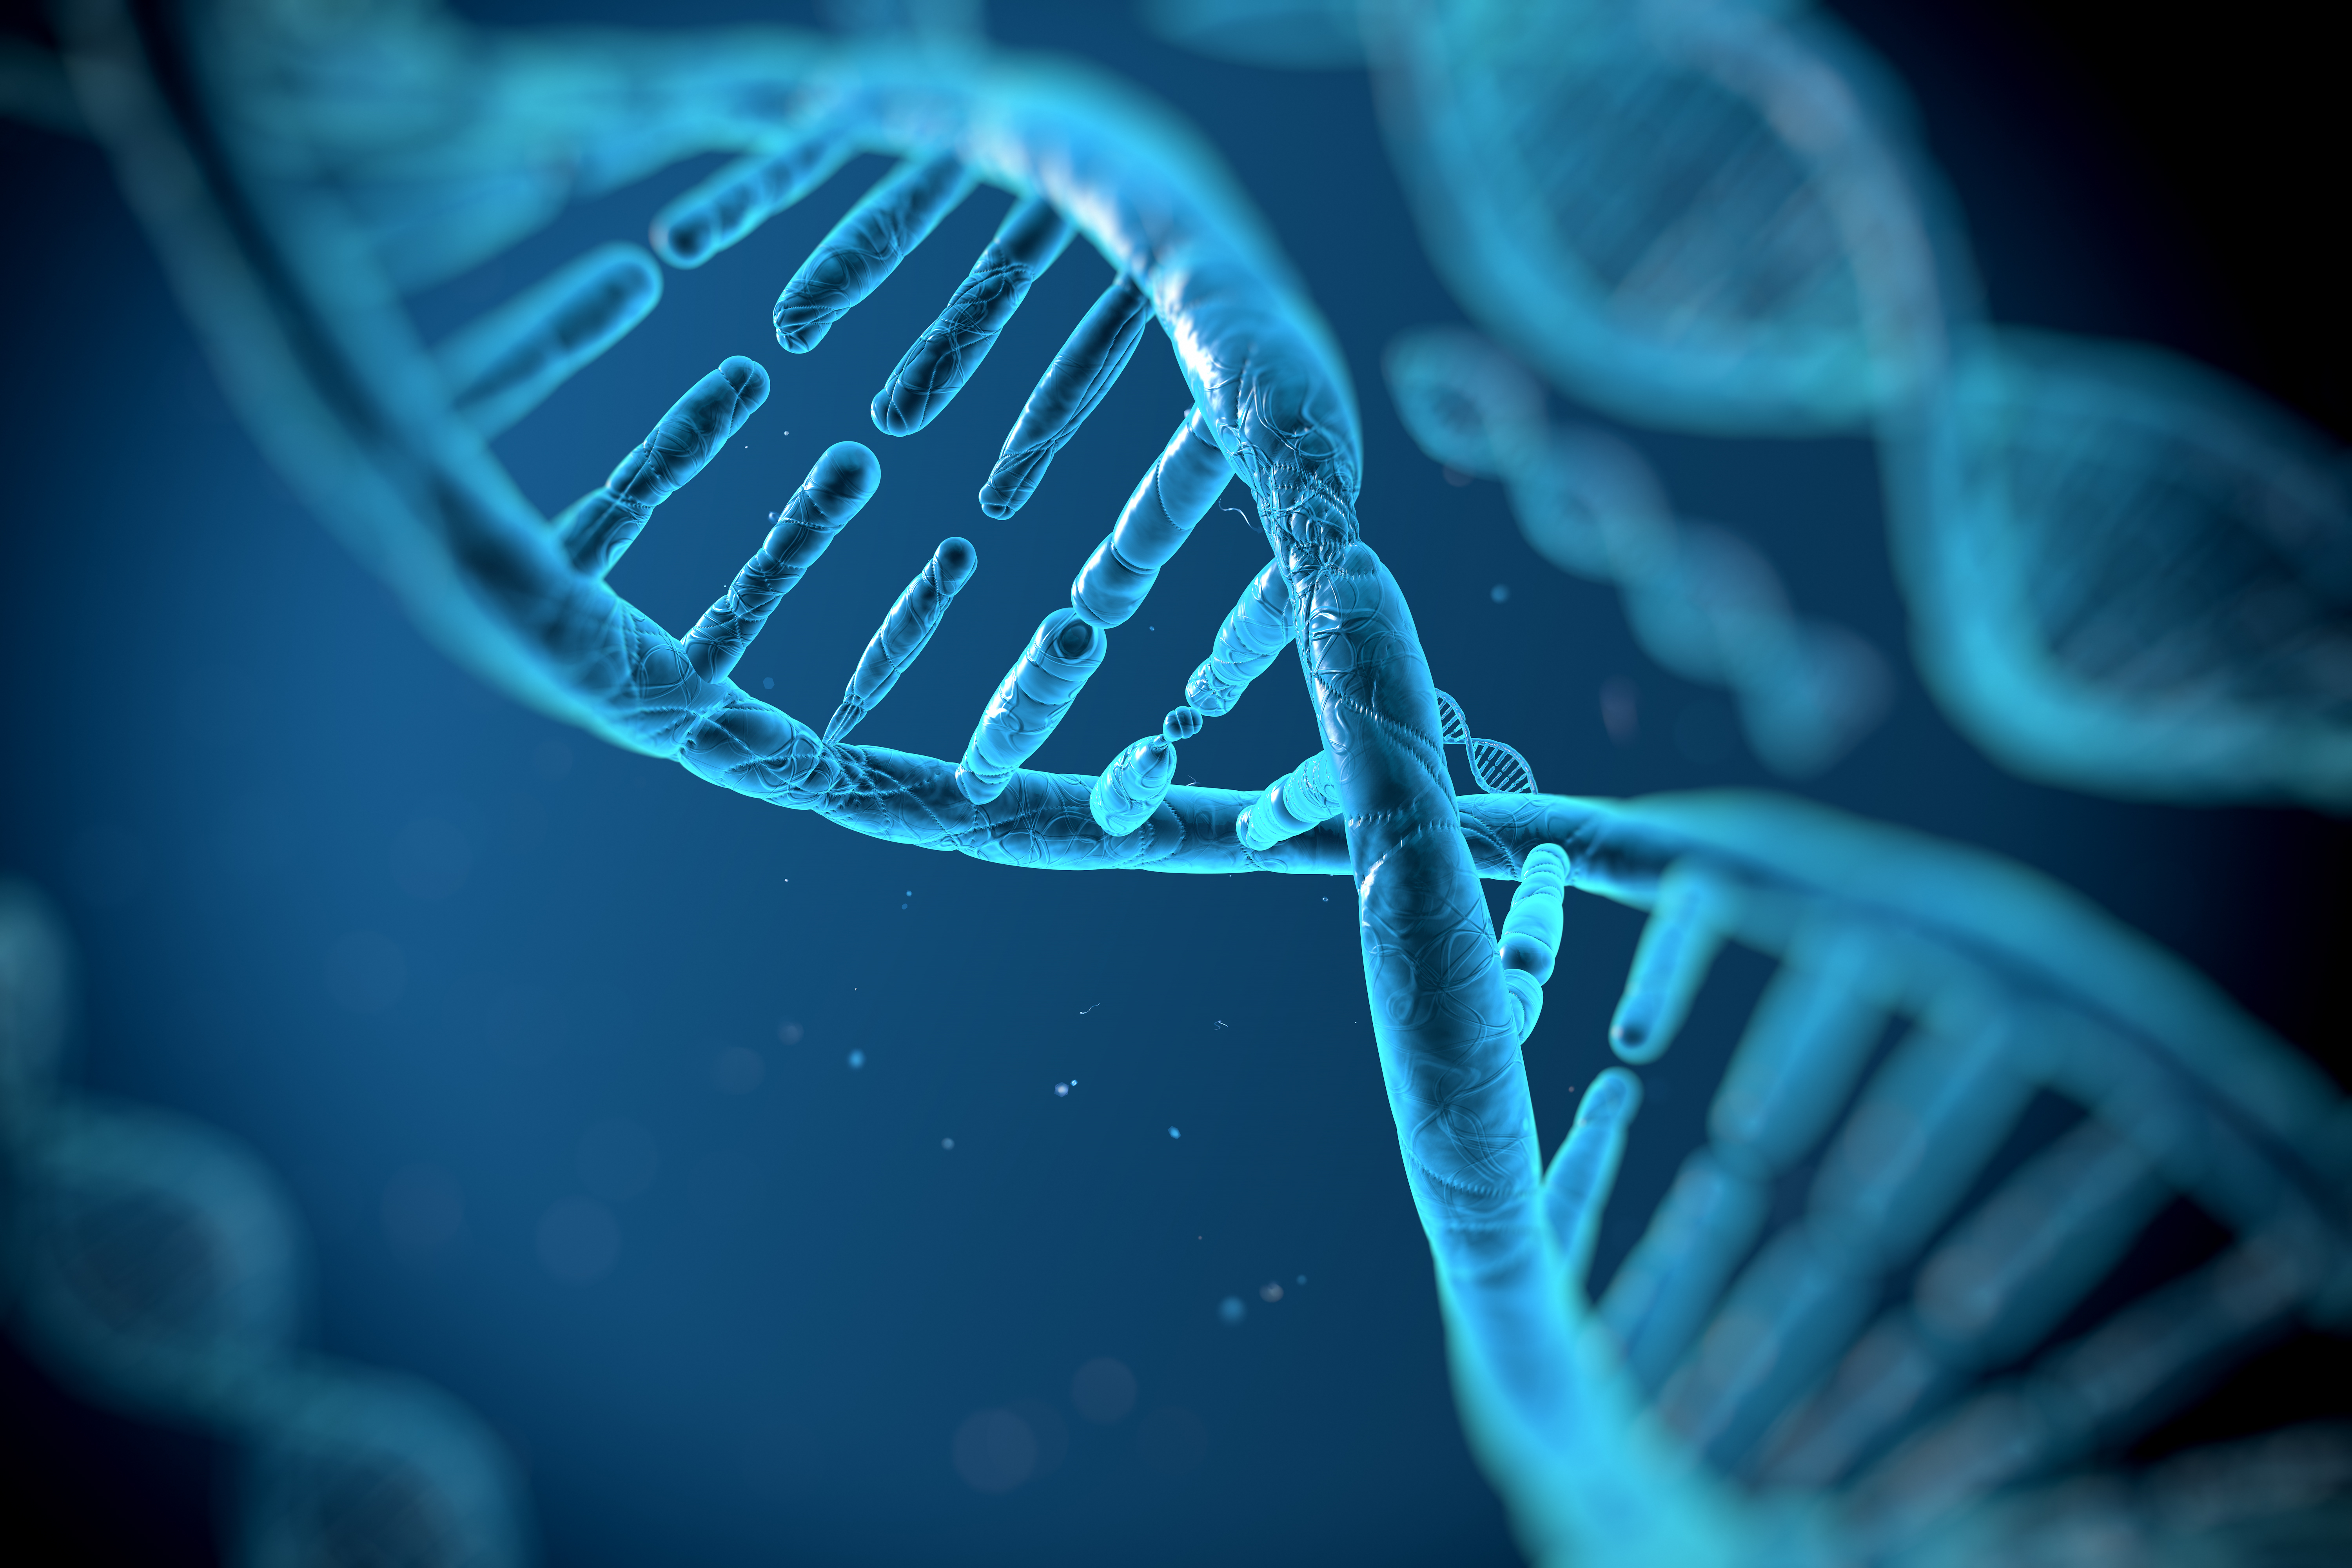 Penn State researchers have identified a gene variant that could lead to more successful drug trials for all ALS patients. (Photo: bt.dk)